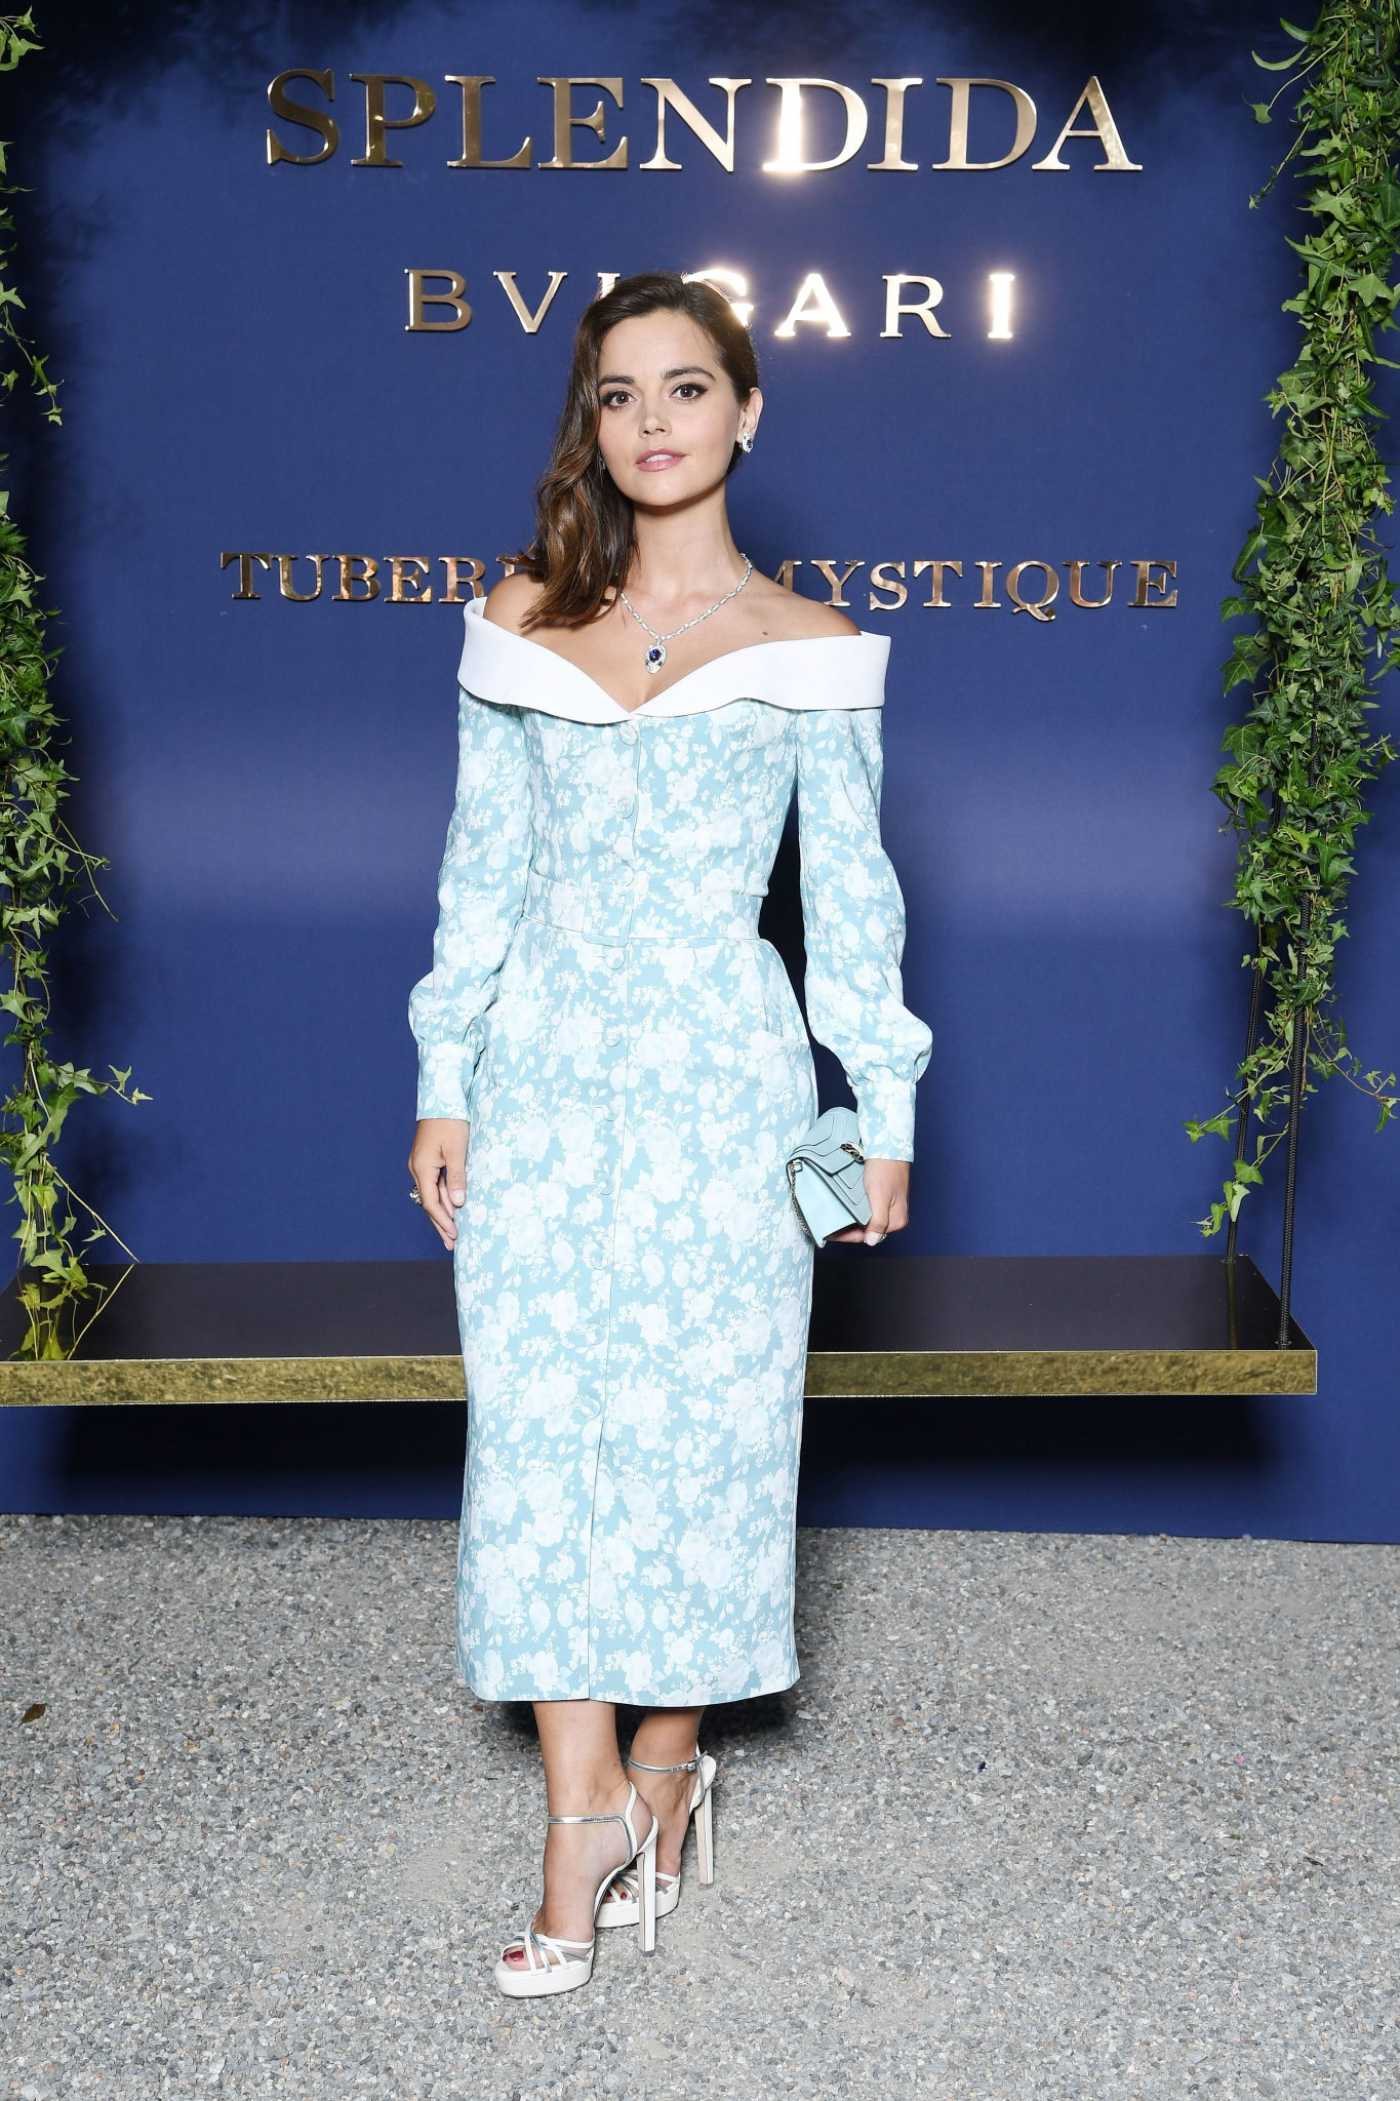 Jenna Coleman Attends the Bvlgari Splendida Tubereuse Mystique Event in Cernobbio 07/09/2019